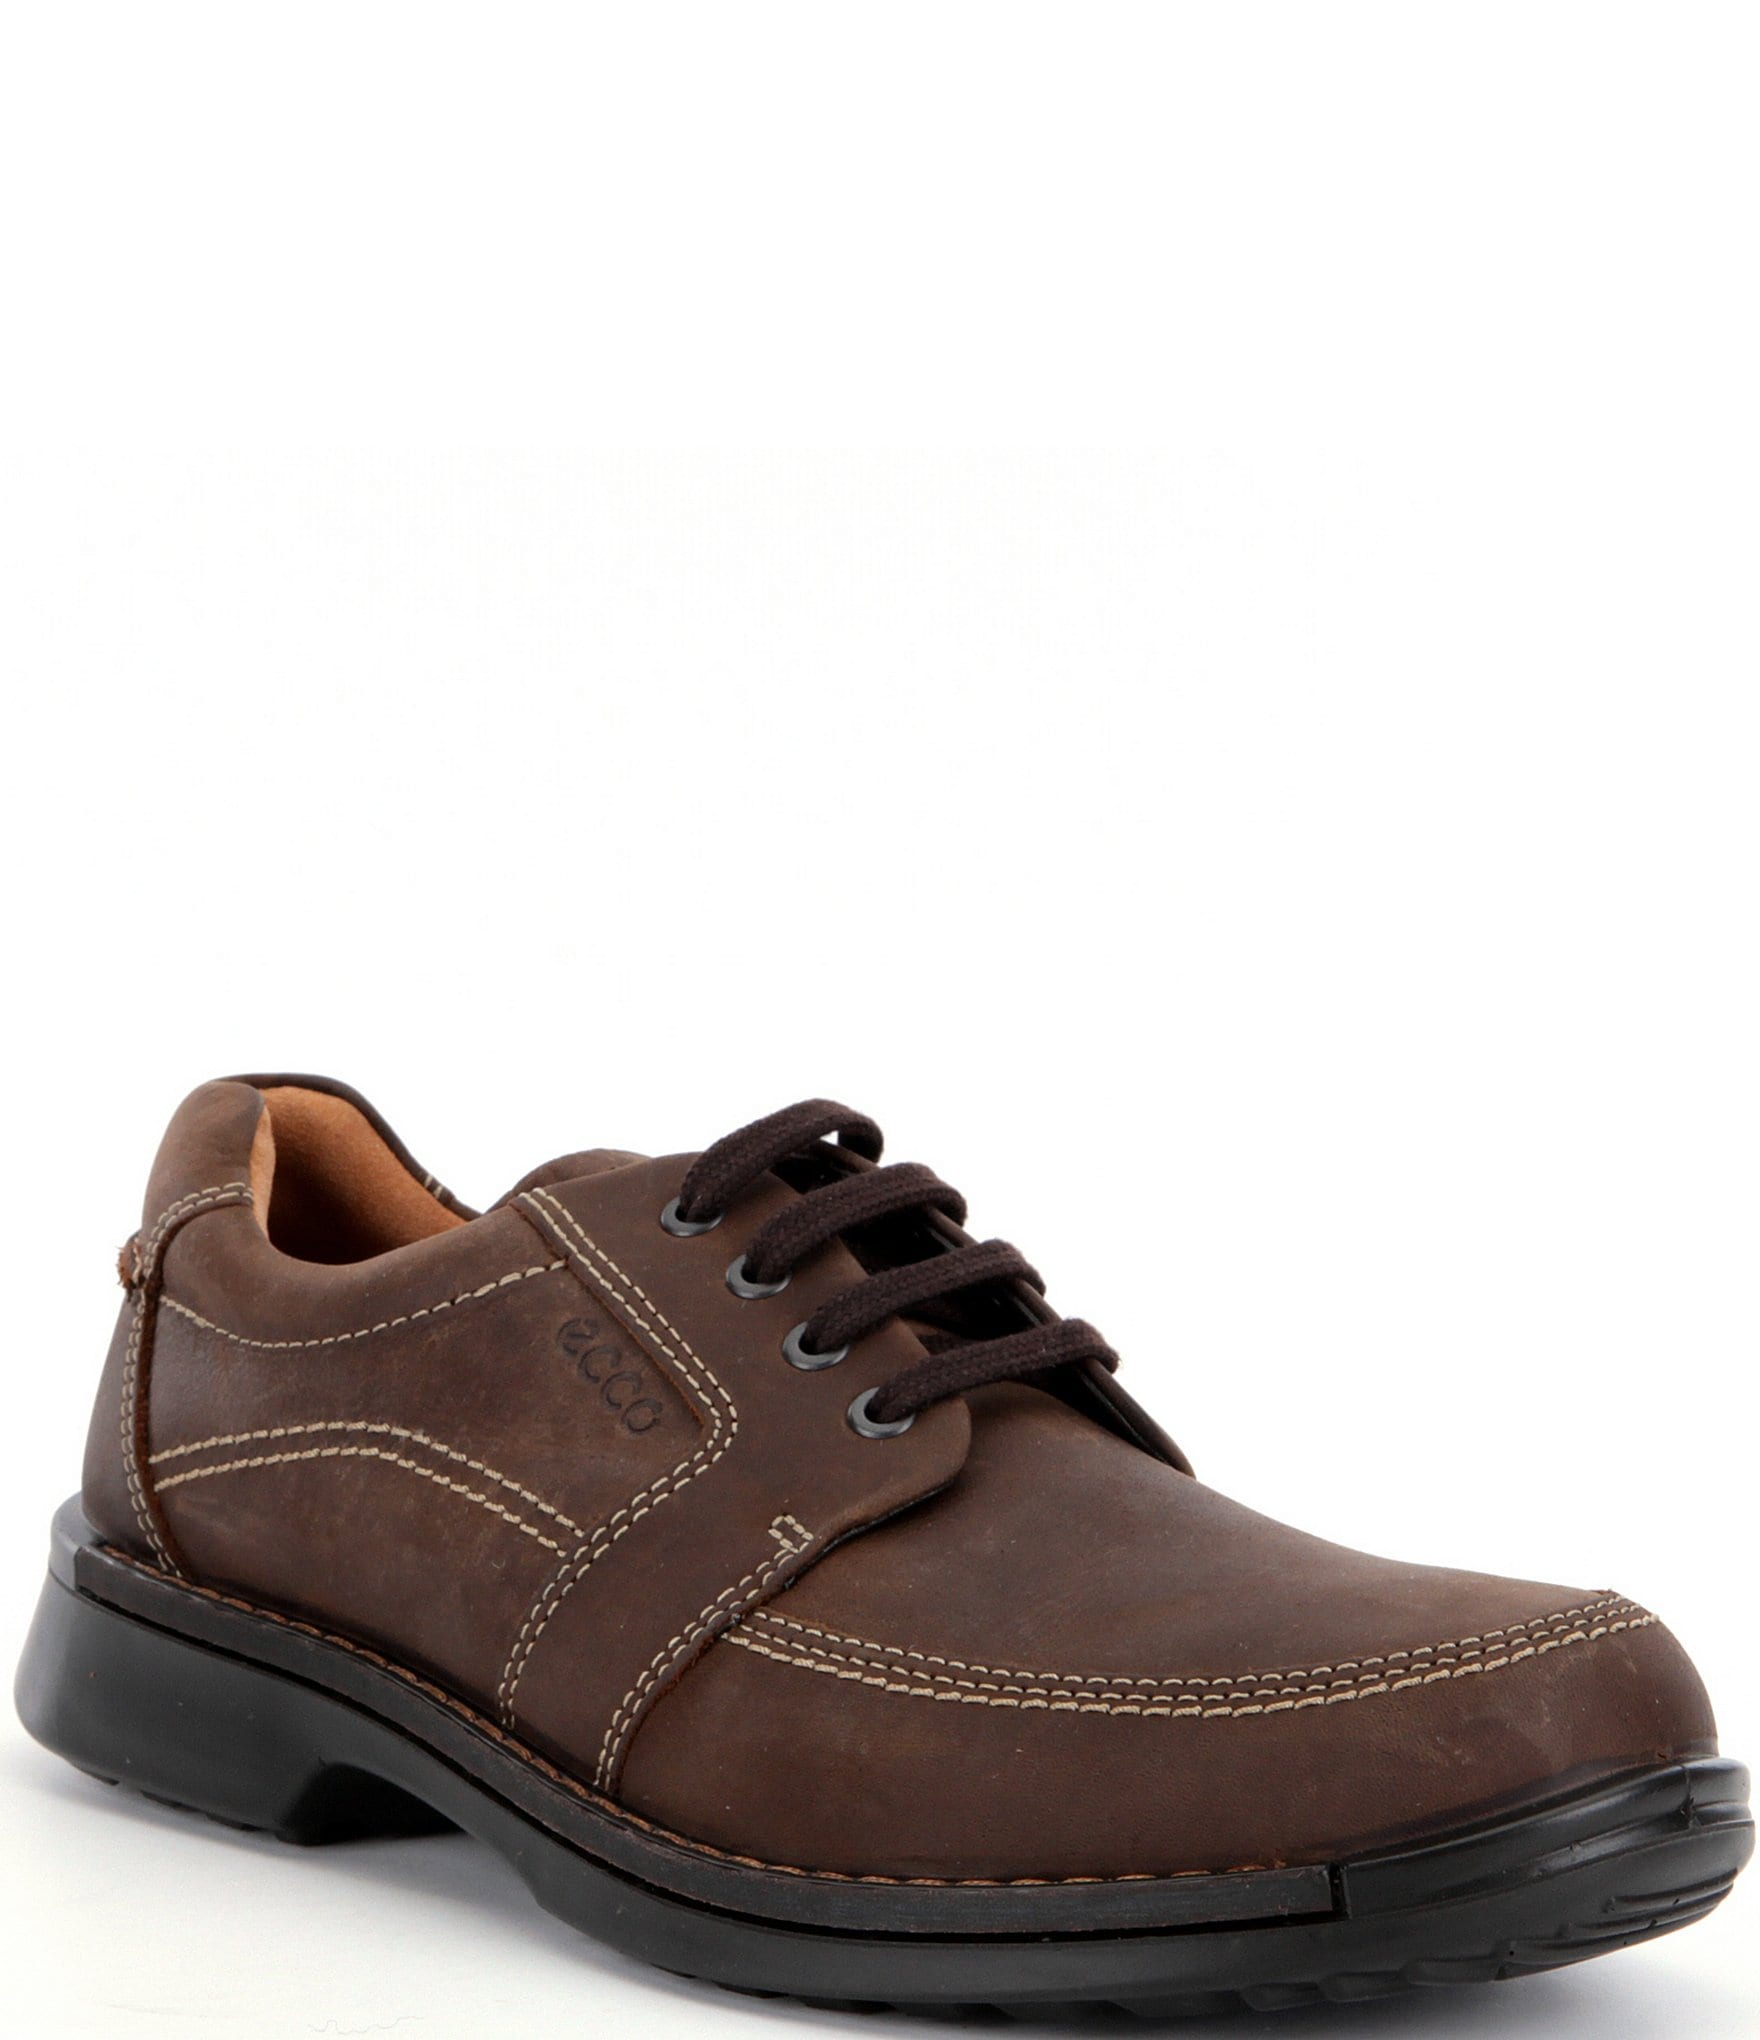 bb8c69e73e2 ECCO Men s Shoes